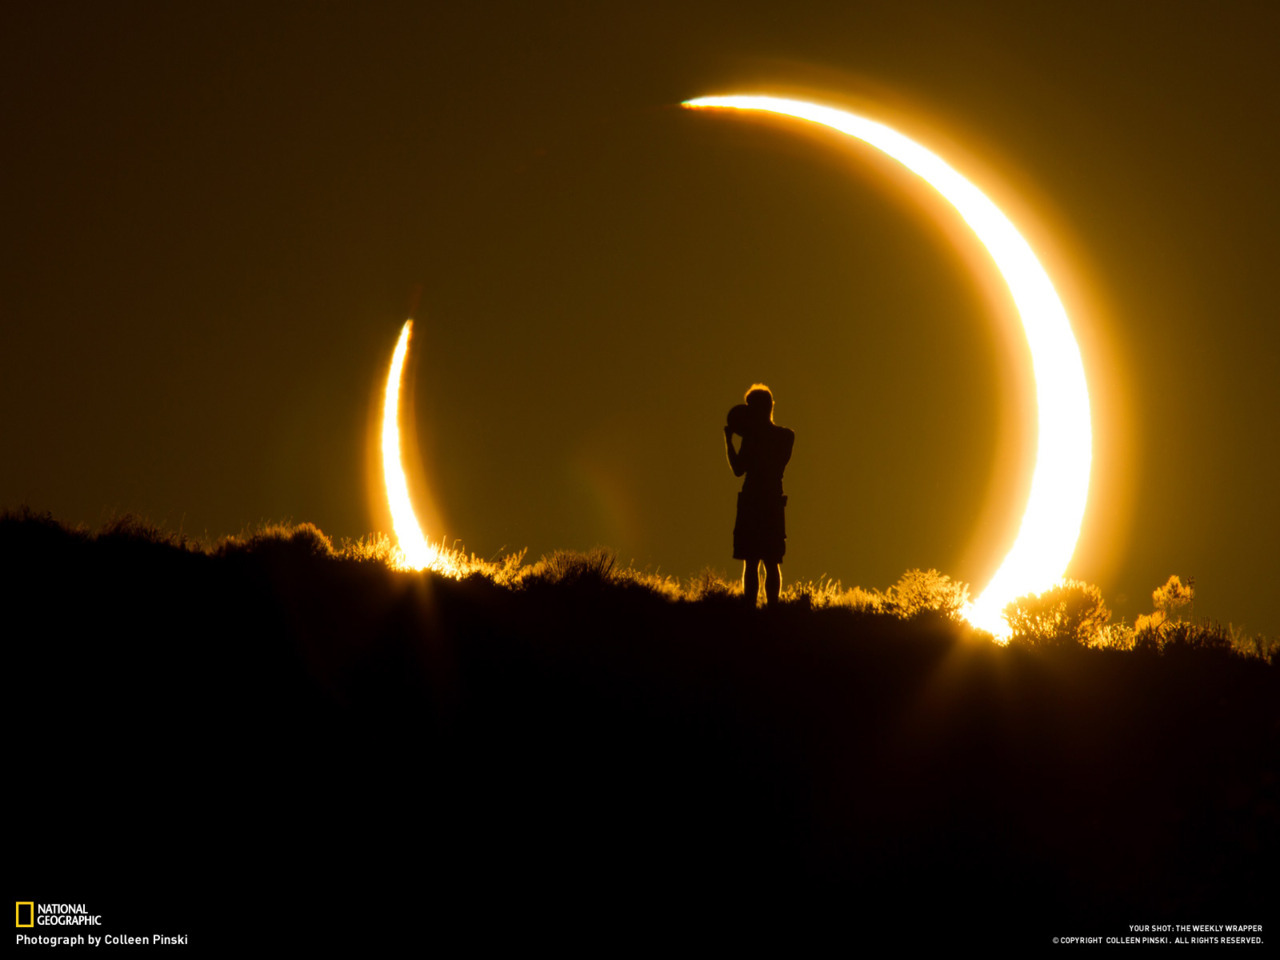 Amazing photo of the recent eclipse by Colleen Pinski of National Geographic.